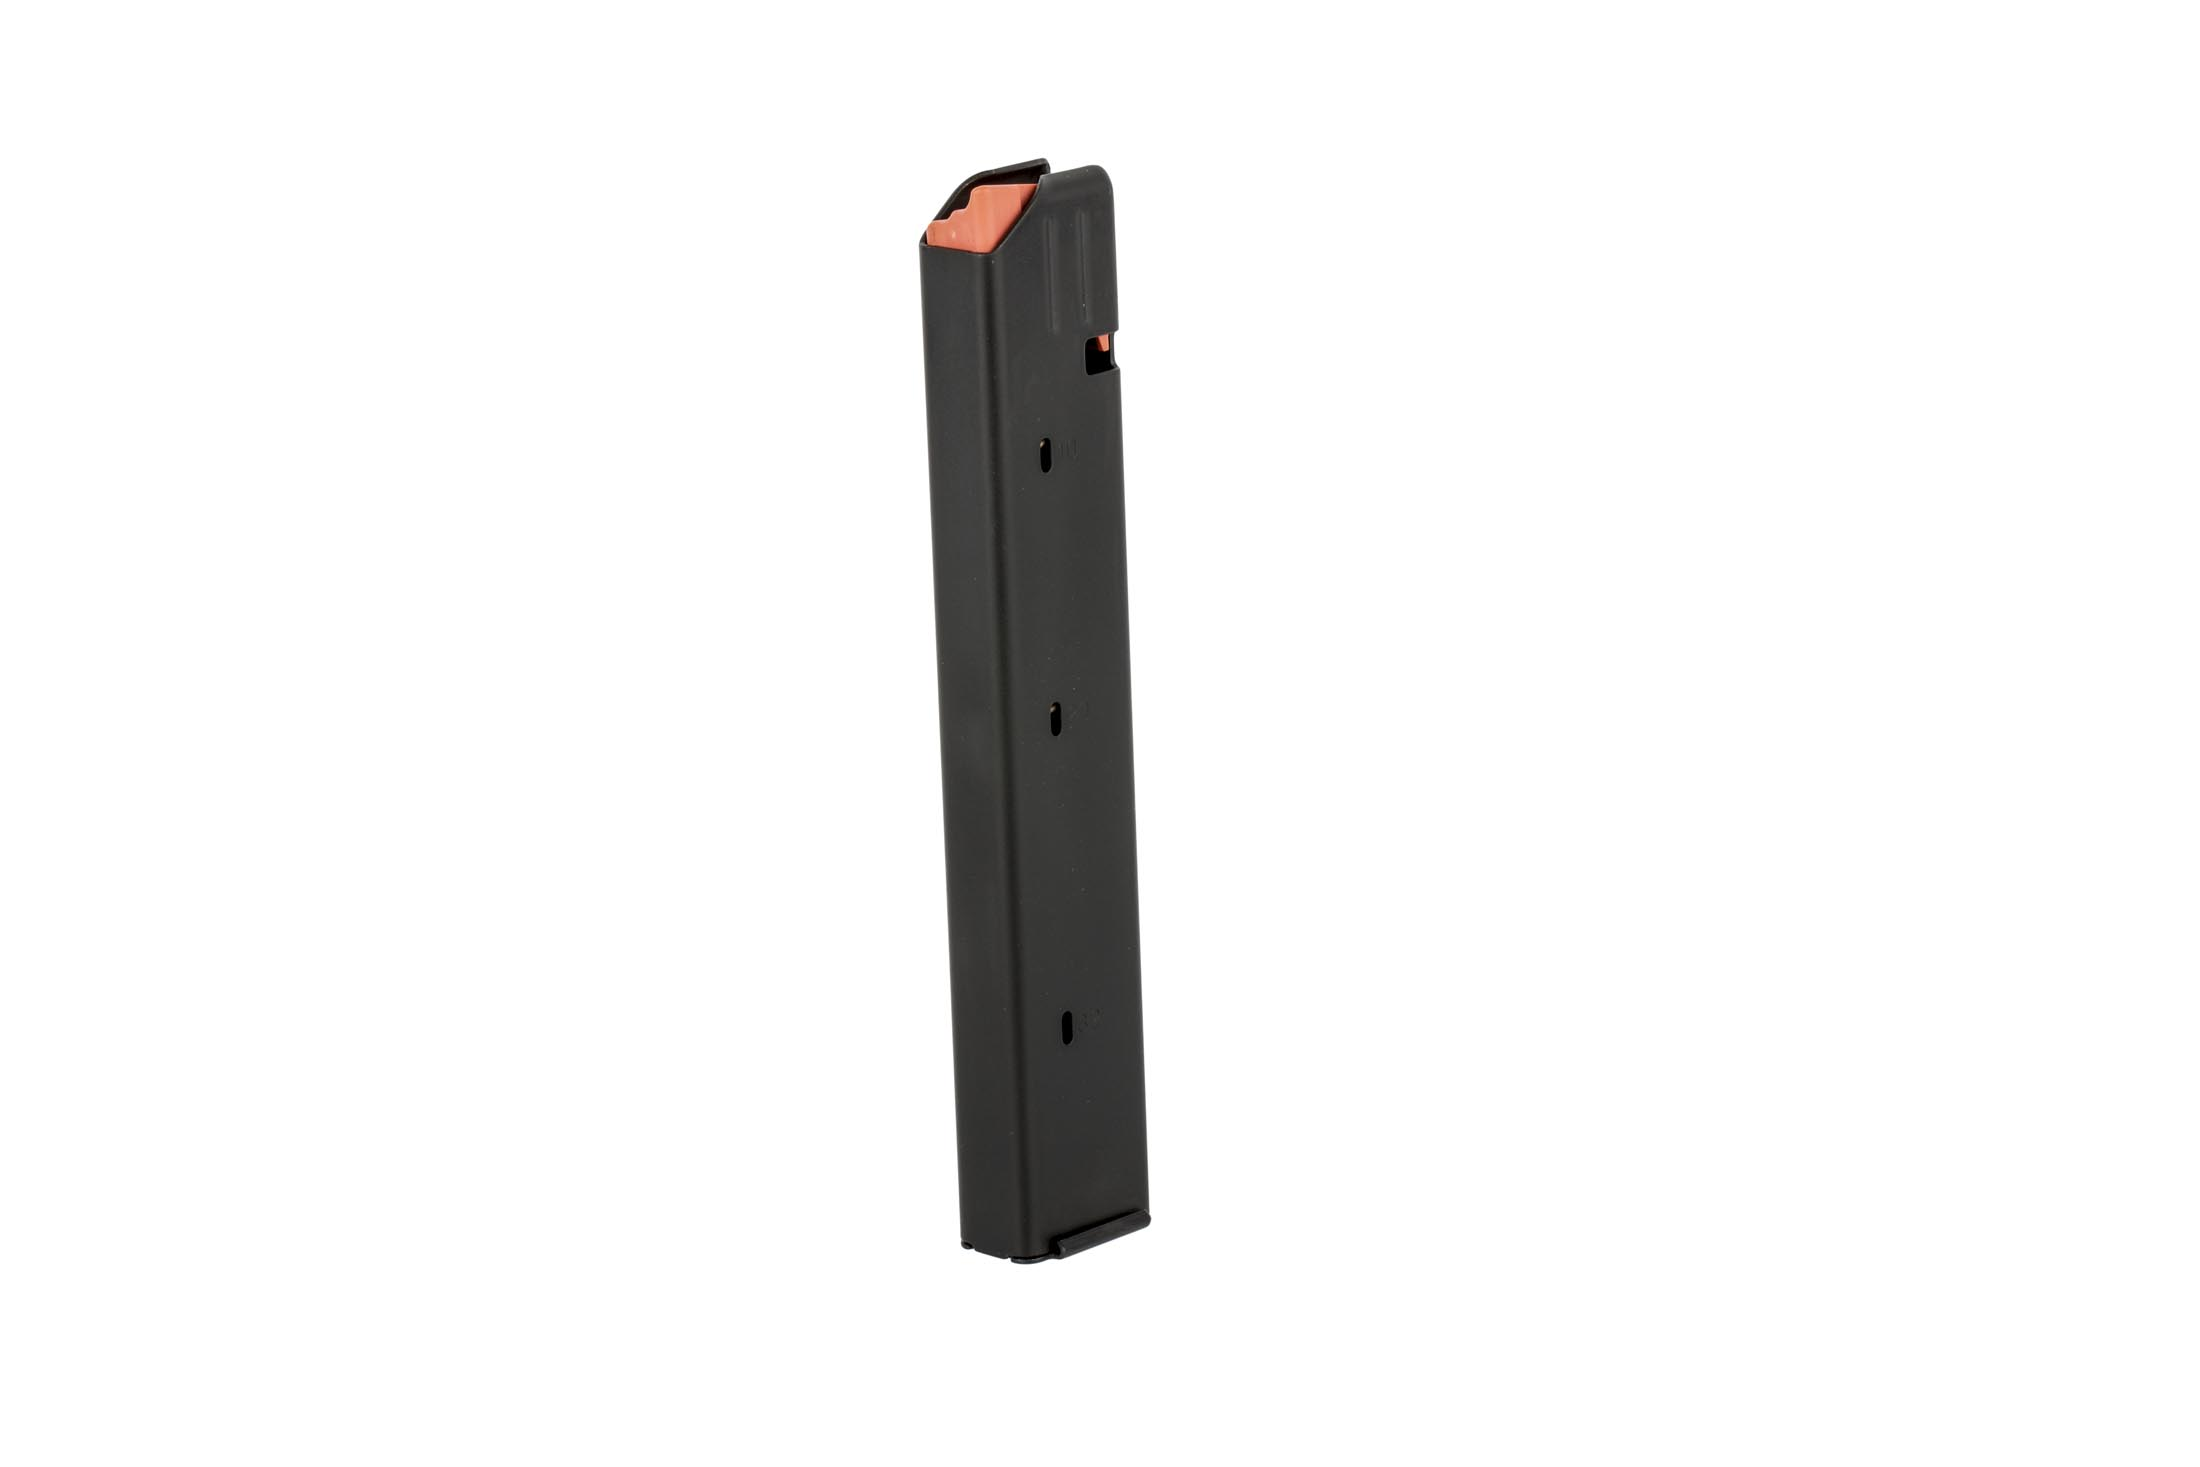 C Products Stainless Steel 32-round Colt style 9mm magazine with high visibility orange follower